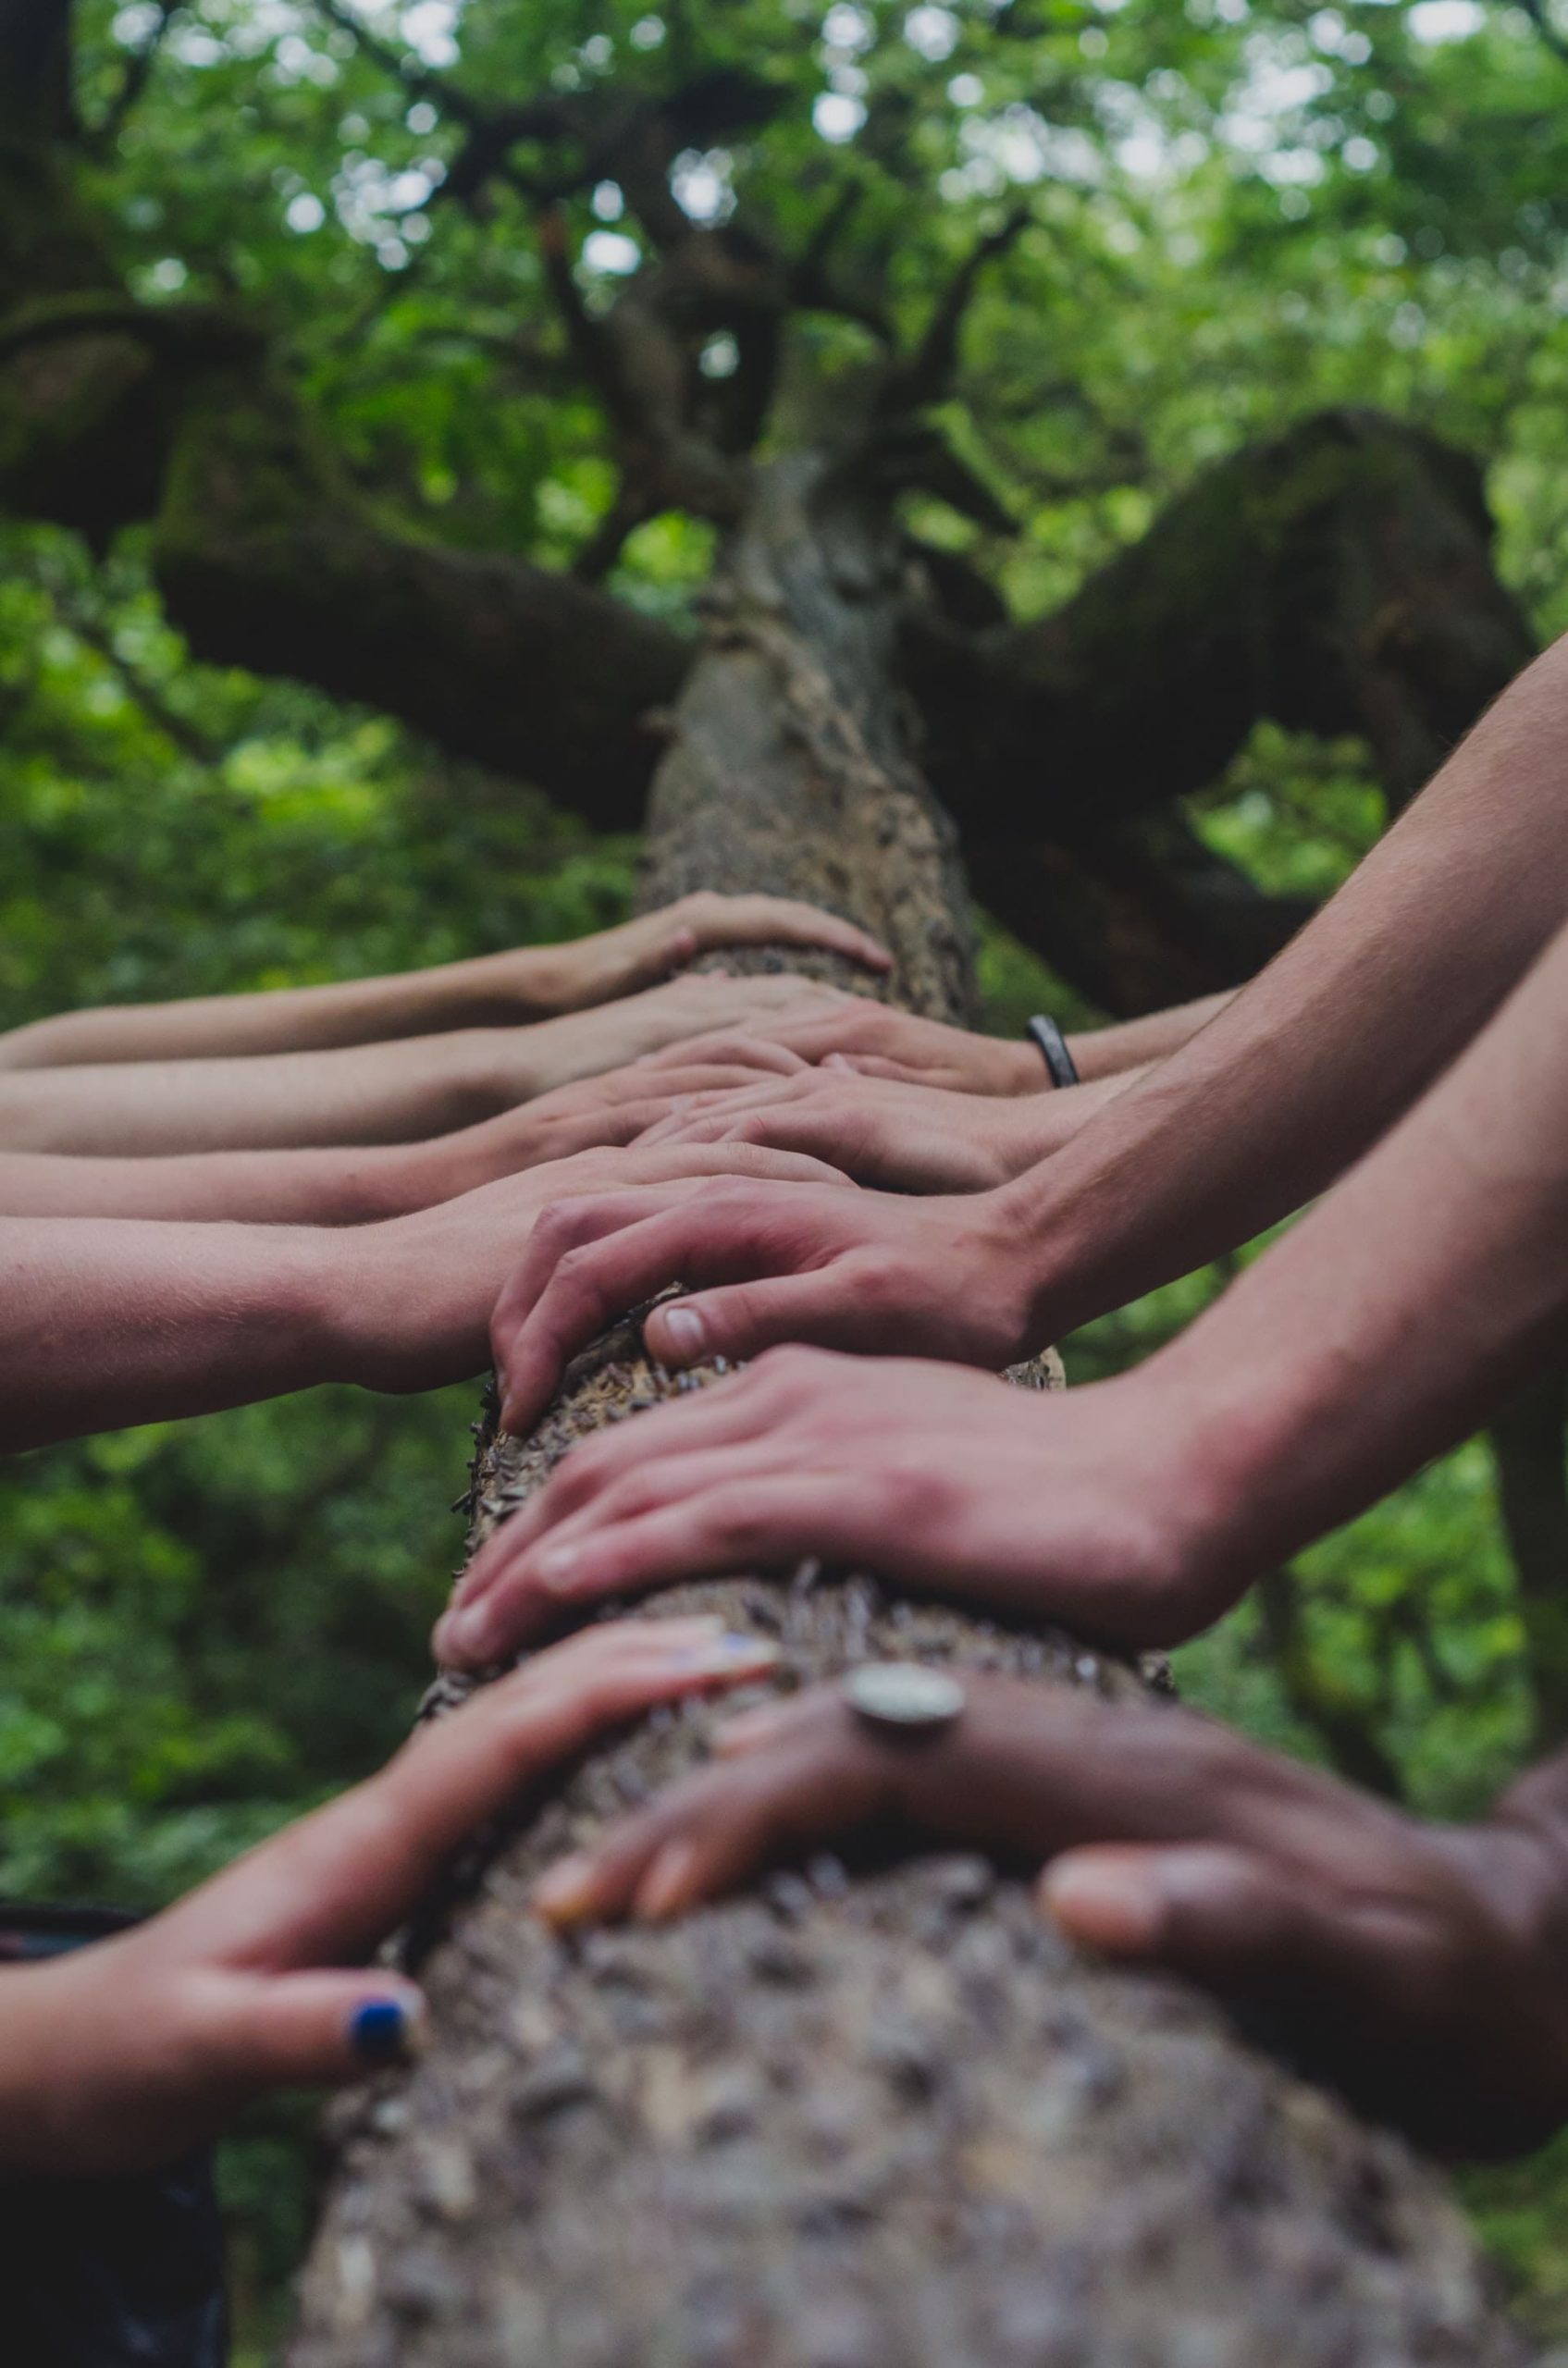 Hands on a tree branch.